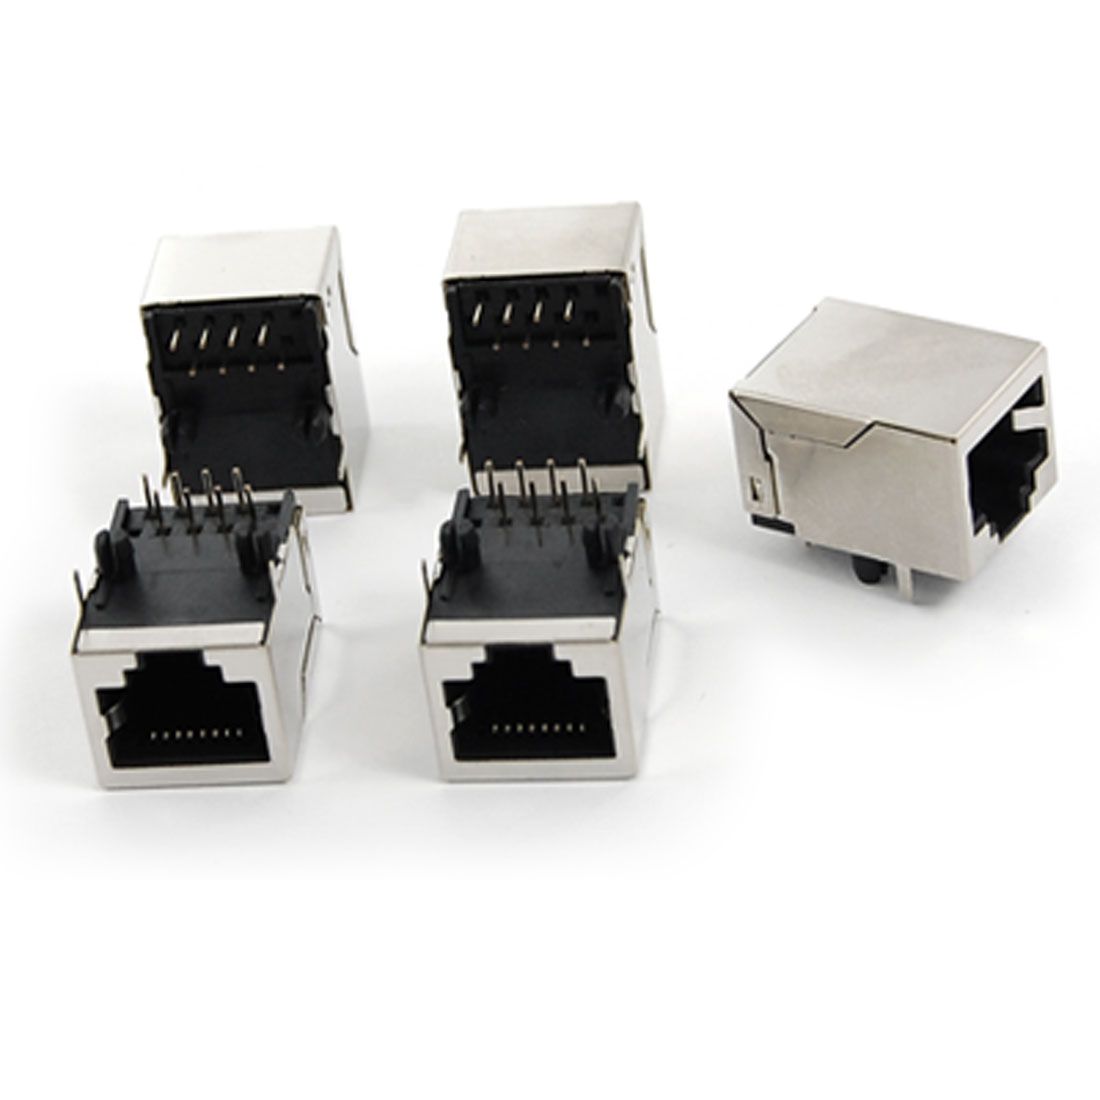 5 Pcs 59-8P Fully Shielded RJ45 Modular Jacks Network PCB Connectors